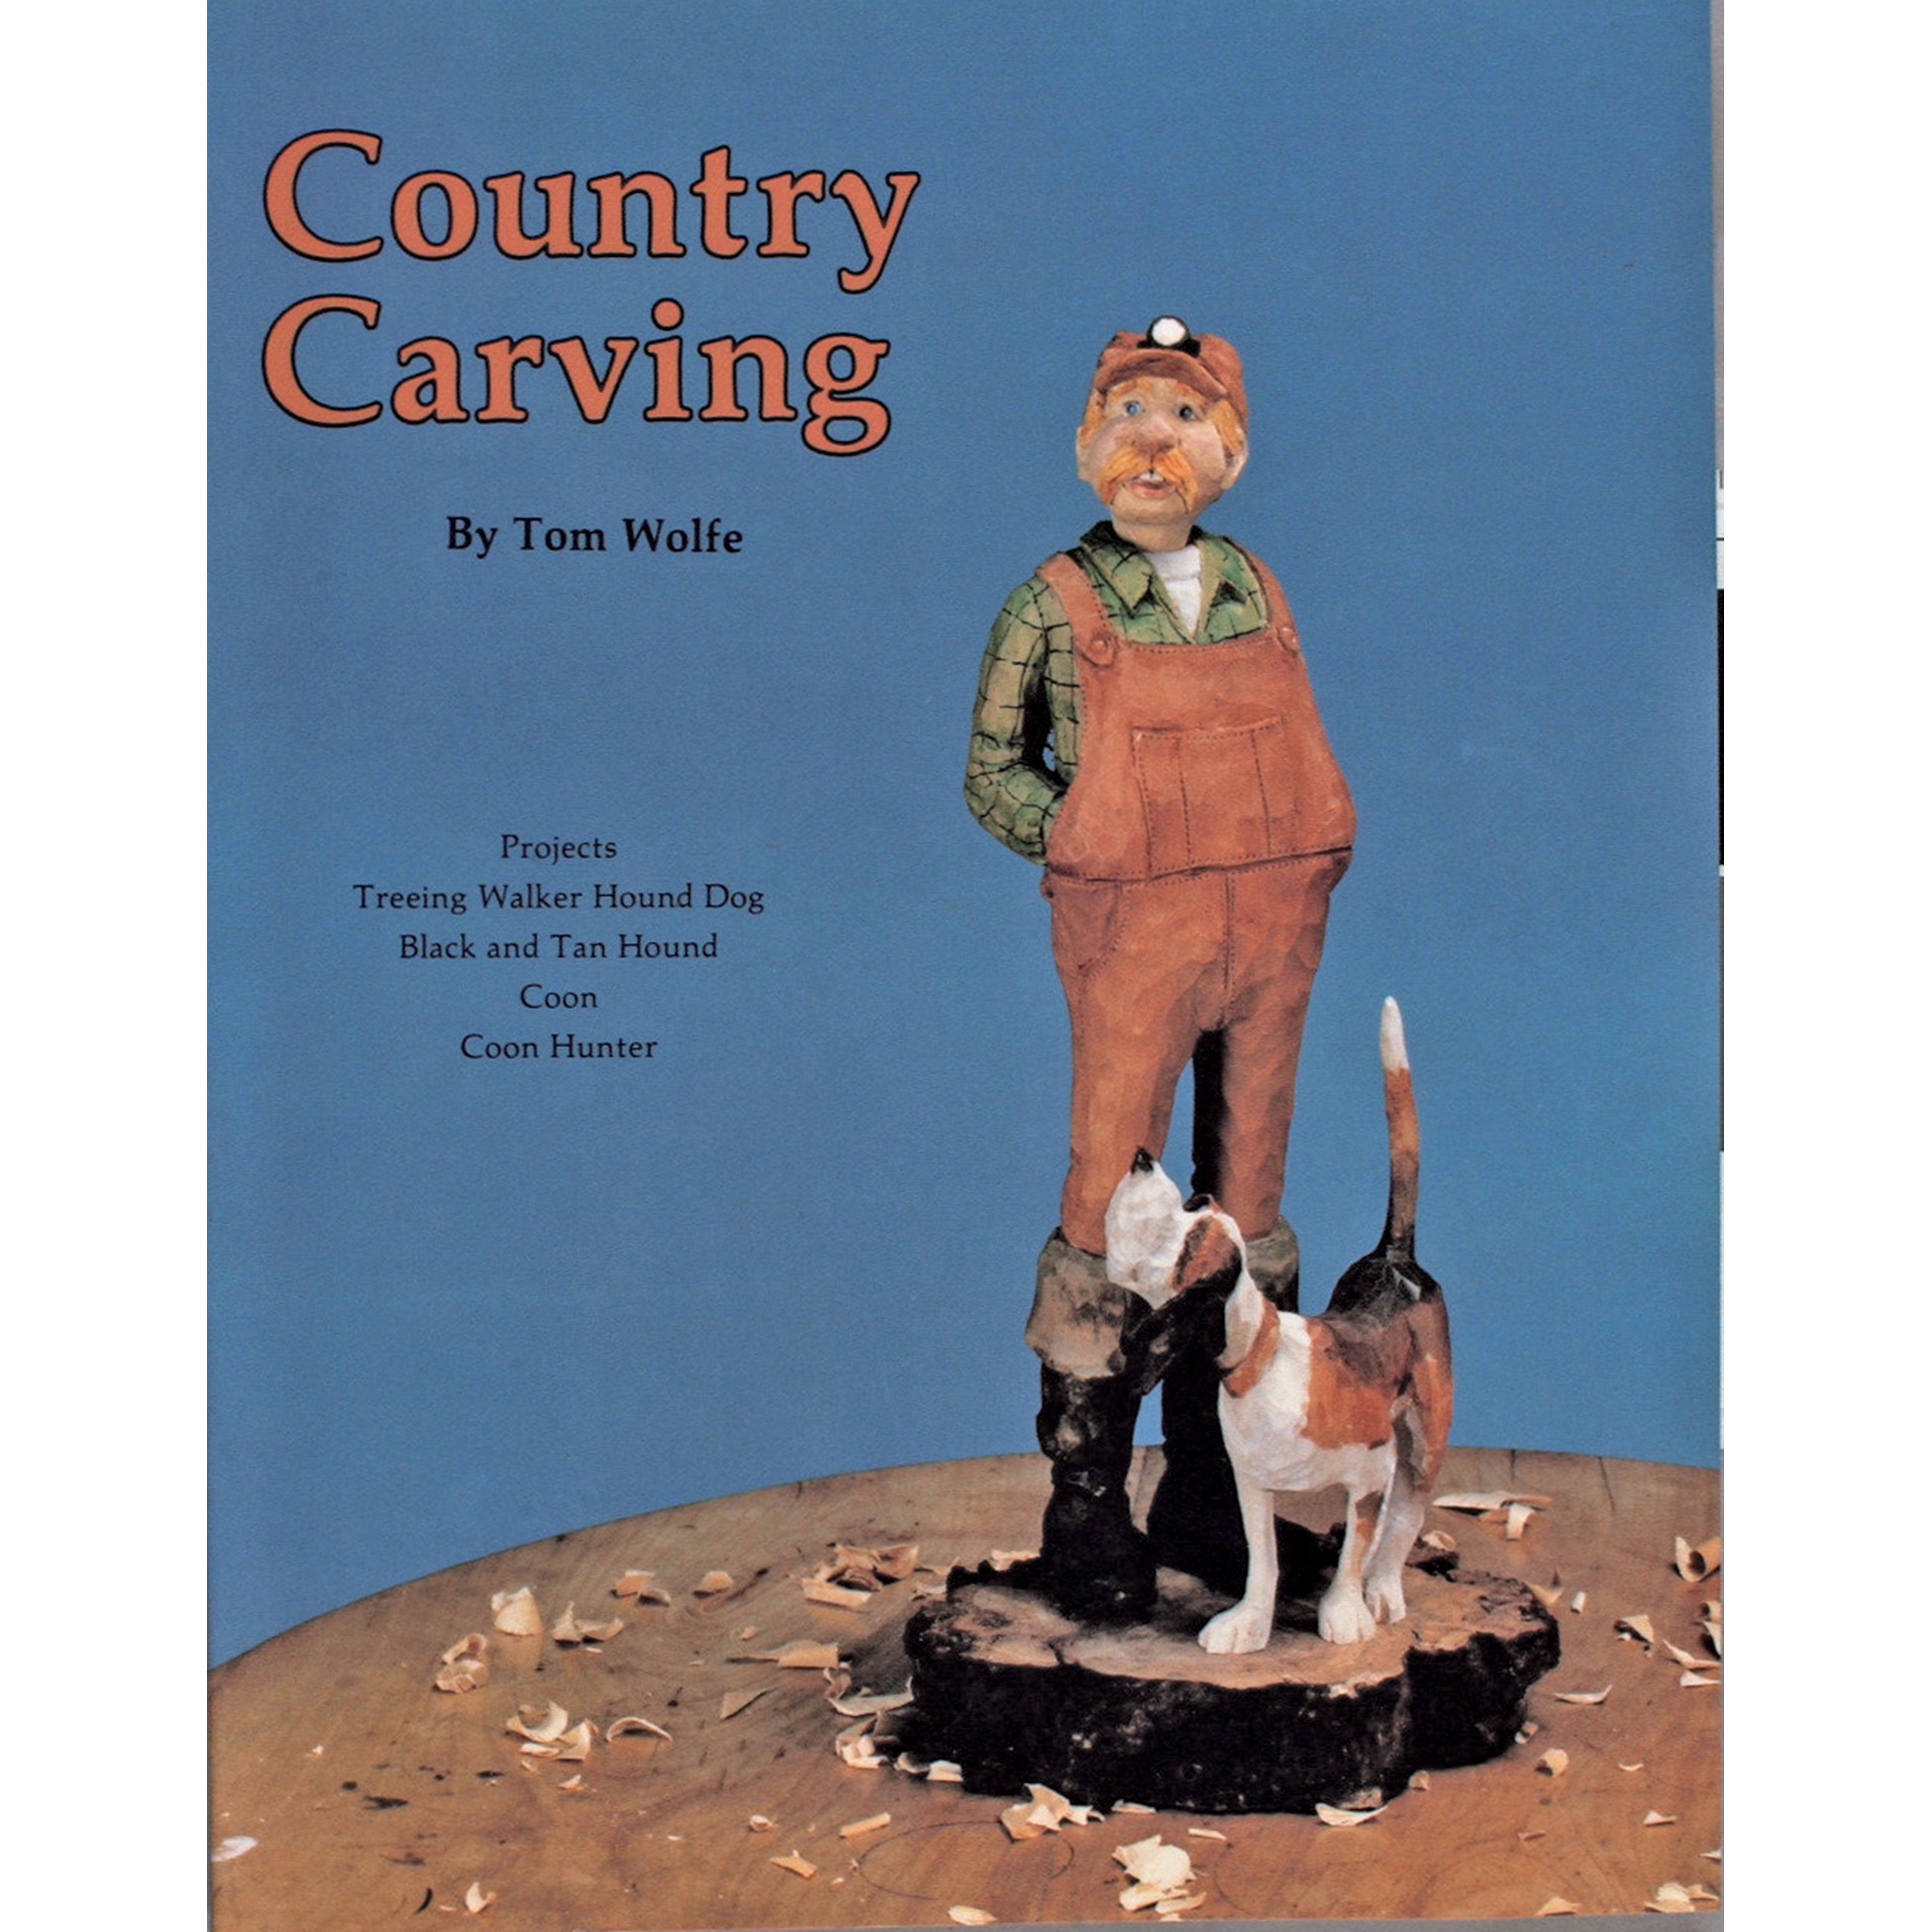 Country Carving